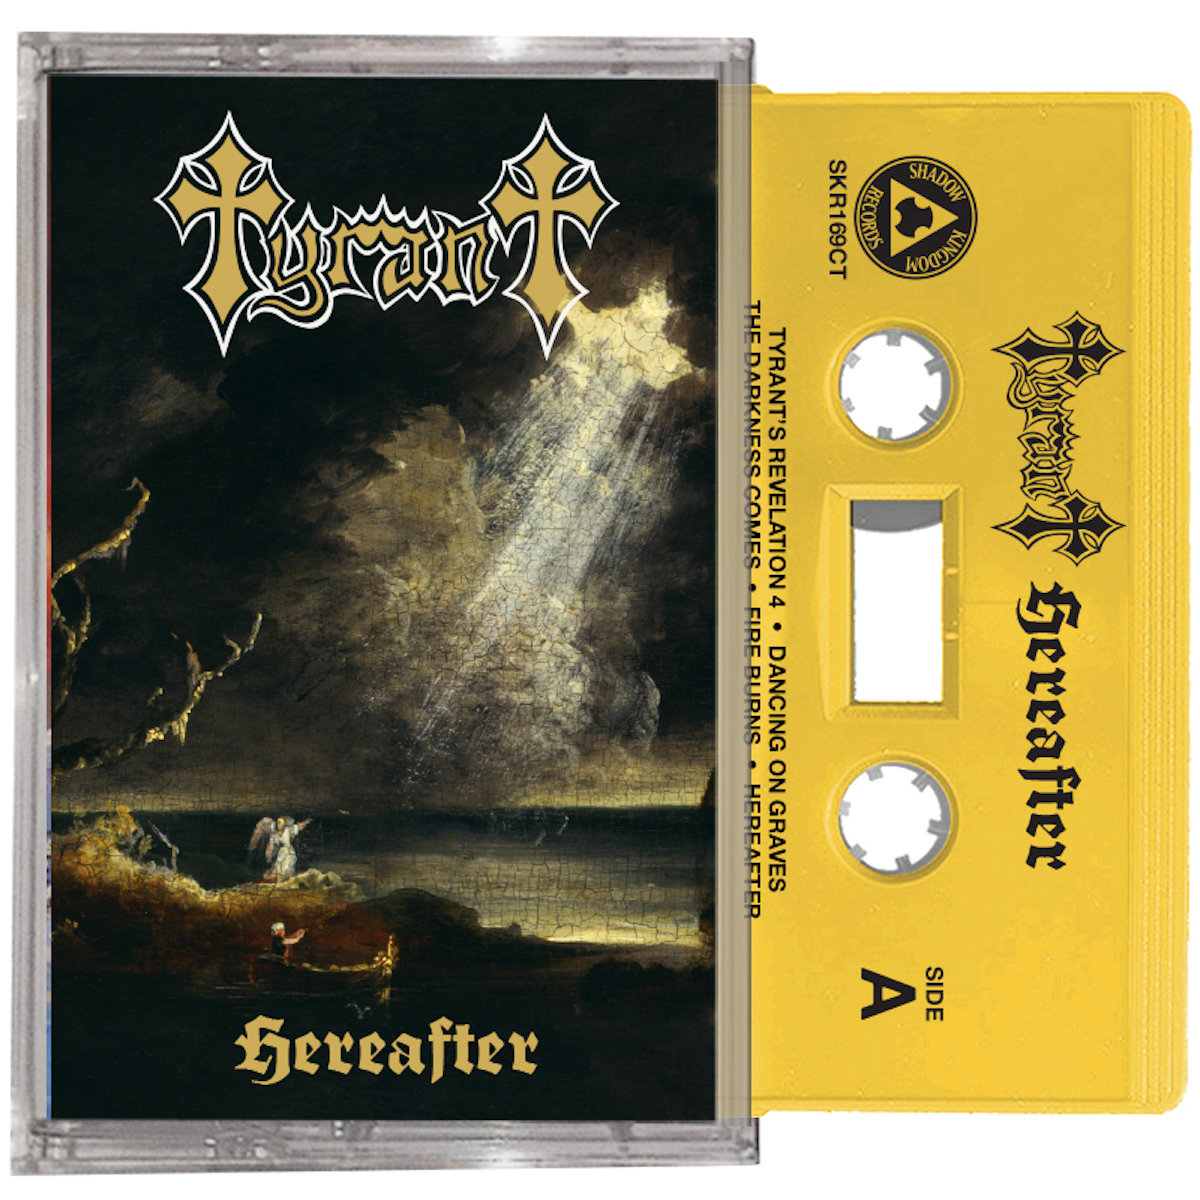 TYRANT Hereafter (2020) Heavy Metal U.S.A 00189410